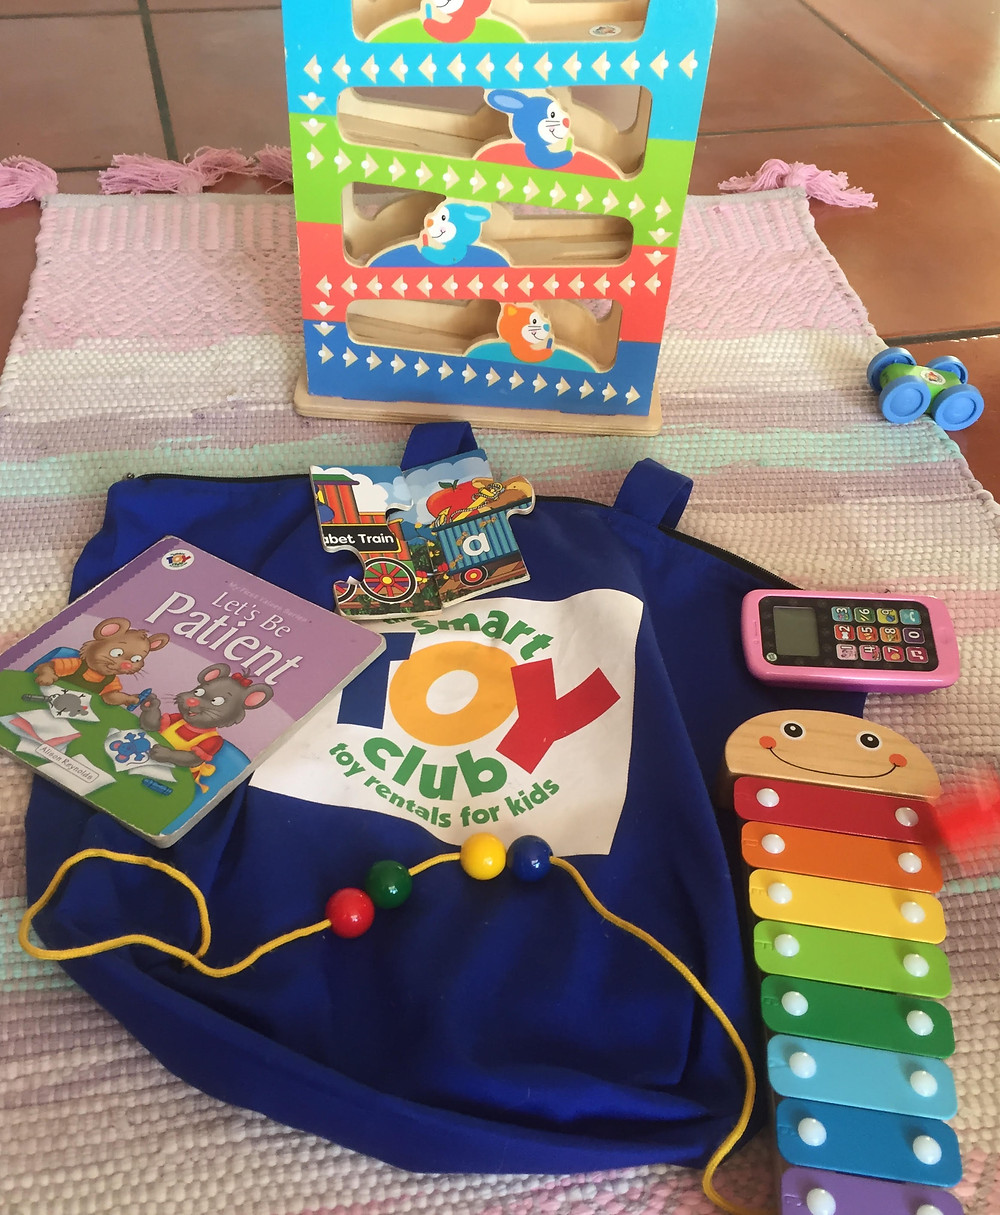 Smart Toy Club is a toy subscription service. Delivery bag of toys monthly to keep children entertained.